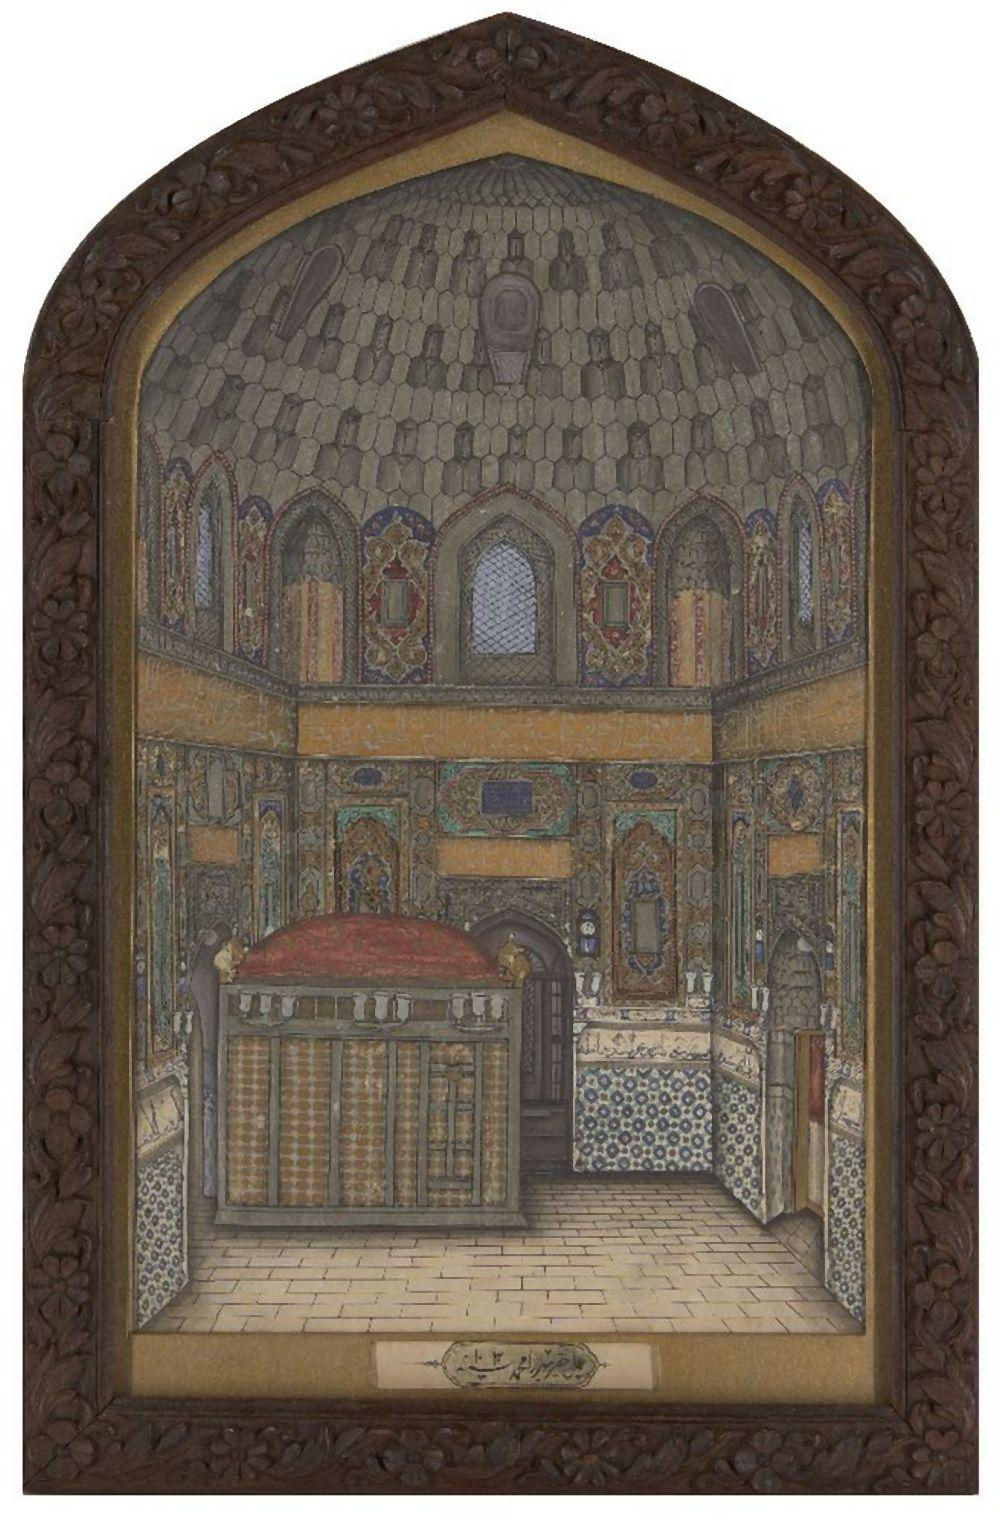 A watercolour of the Shrine of Imam Ali Al-Ridha, the eighth Imam by Mirza